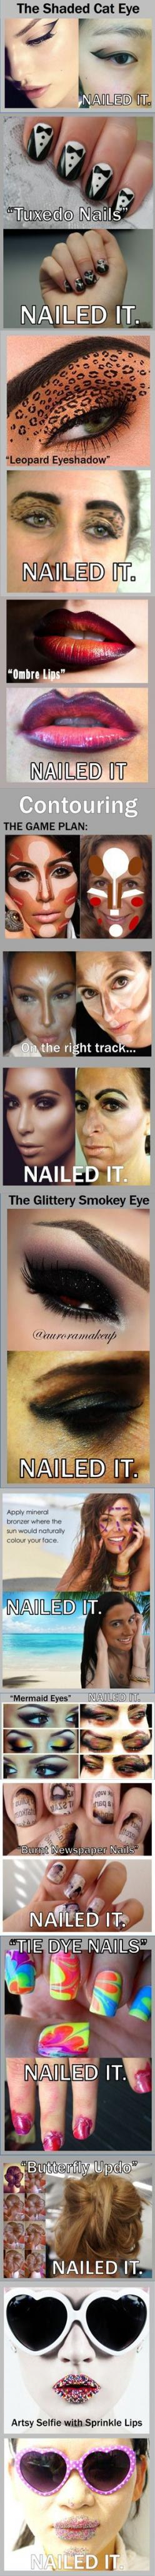 NAILED IT lol these are my attempts at re-creating Pins: Cat Eye, Funny Pinterest Fails, Makeup Fail, Nailed It Fails, Nailed It Humor Fails, Funny Fails, Pinterest Fails Nailed It, Funny Pintrest Fails, Nailed It Pinterest Fails